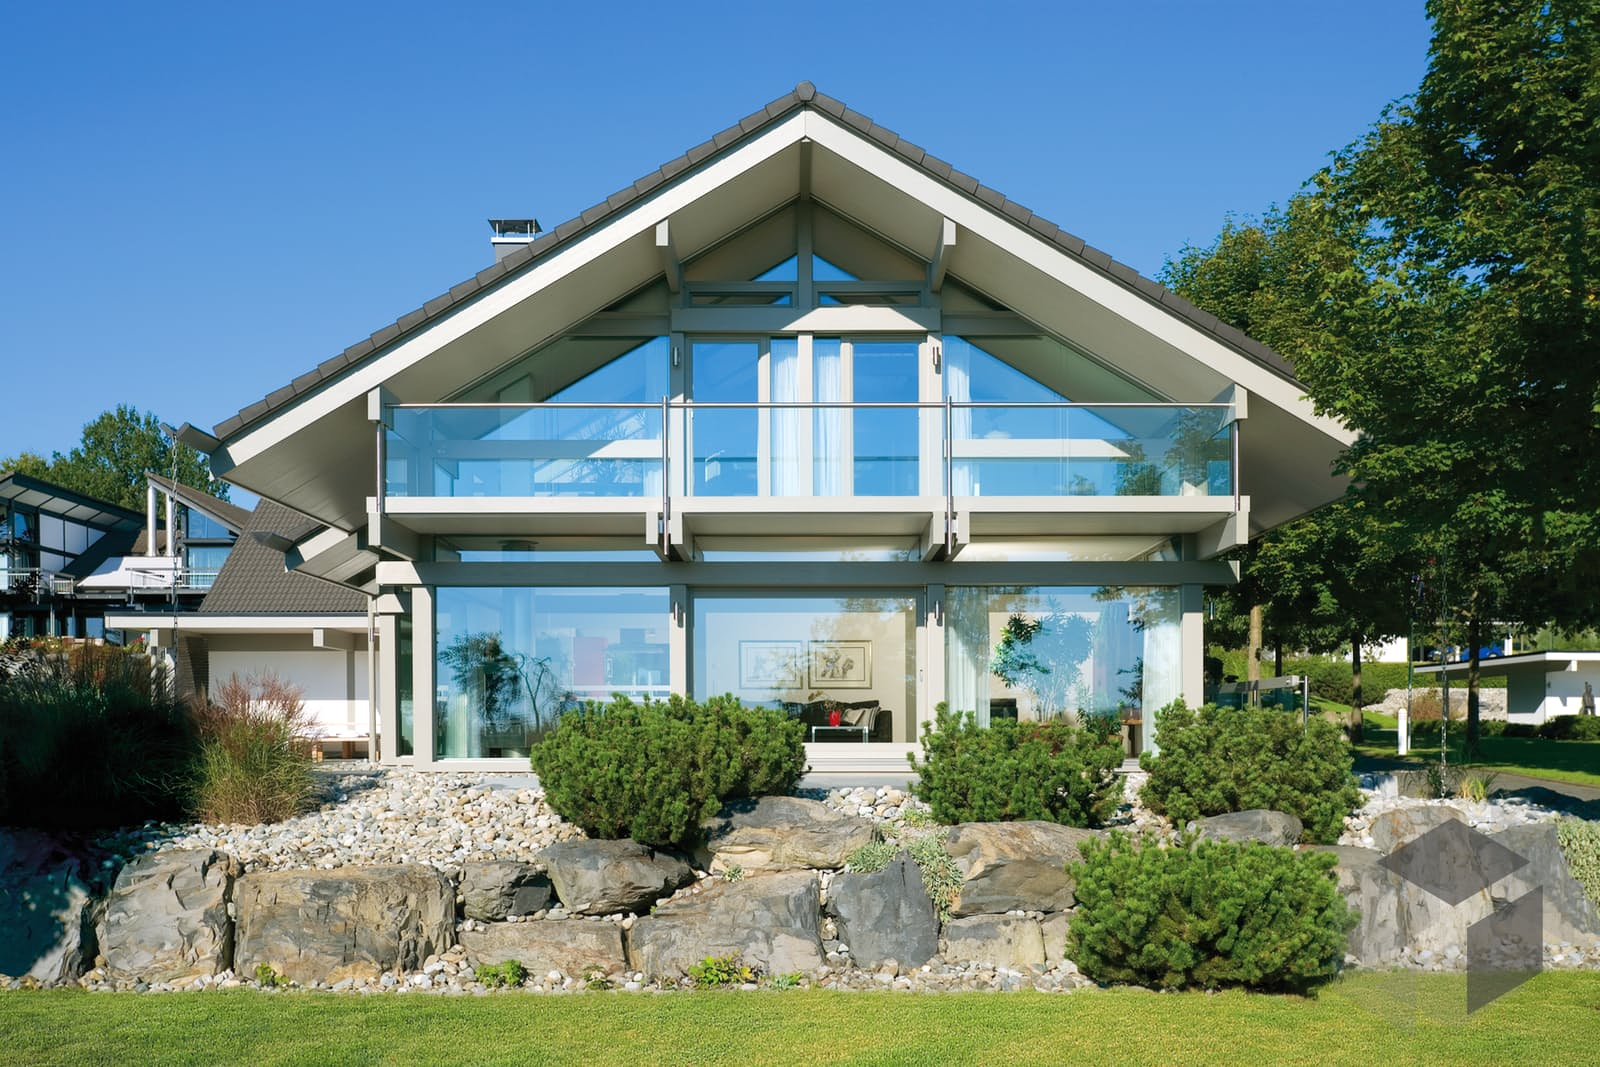 Magnificent Huf Haus Kosten Ideas Of Beautiful With Nederland